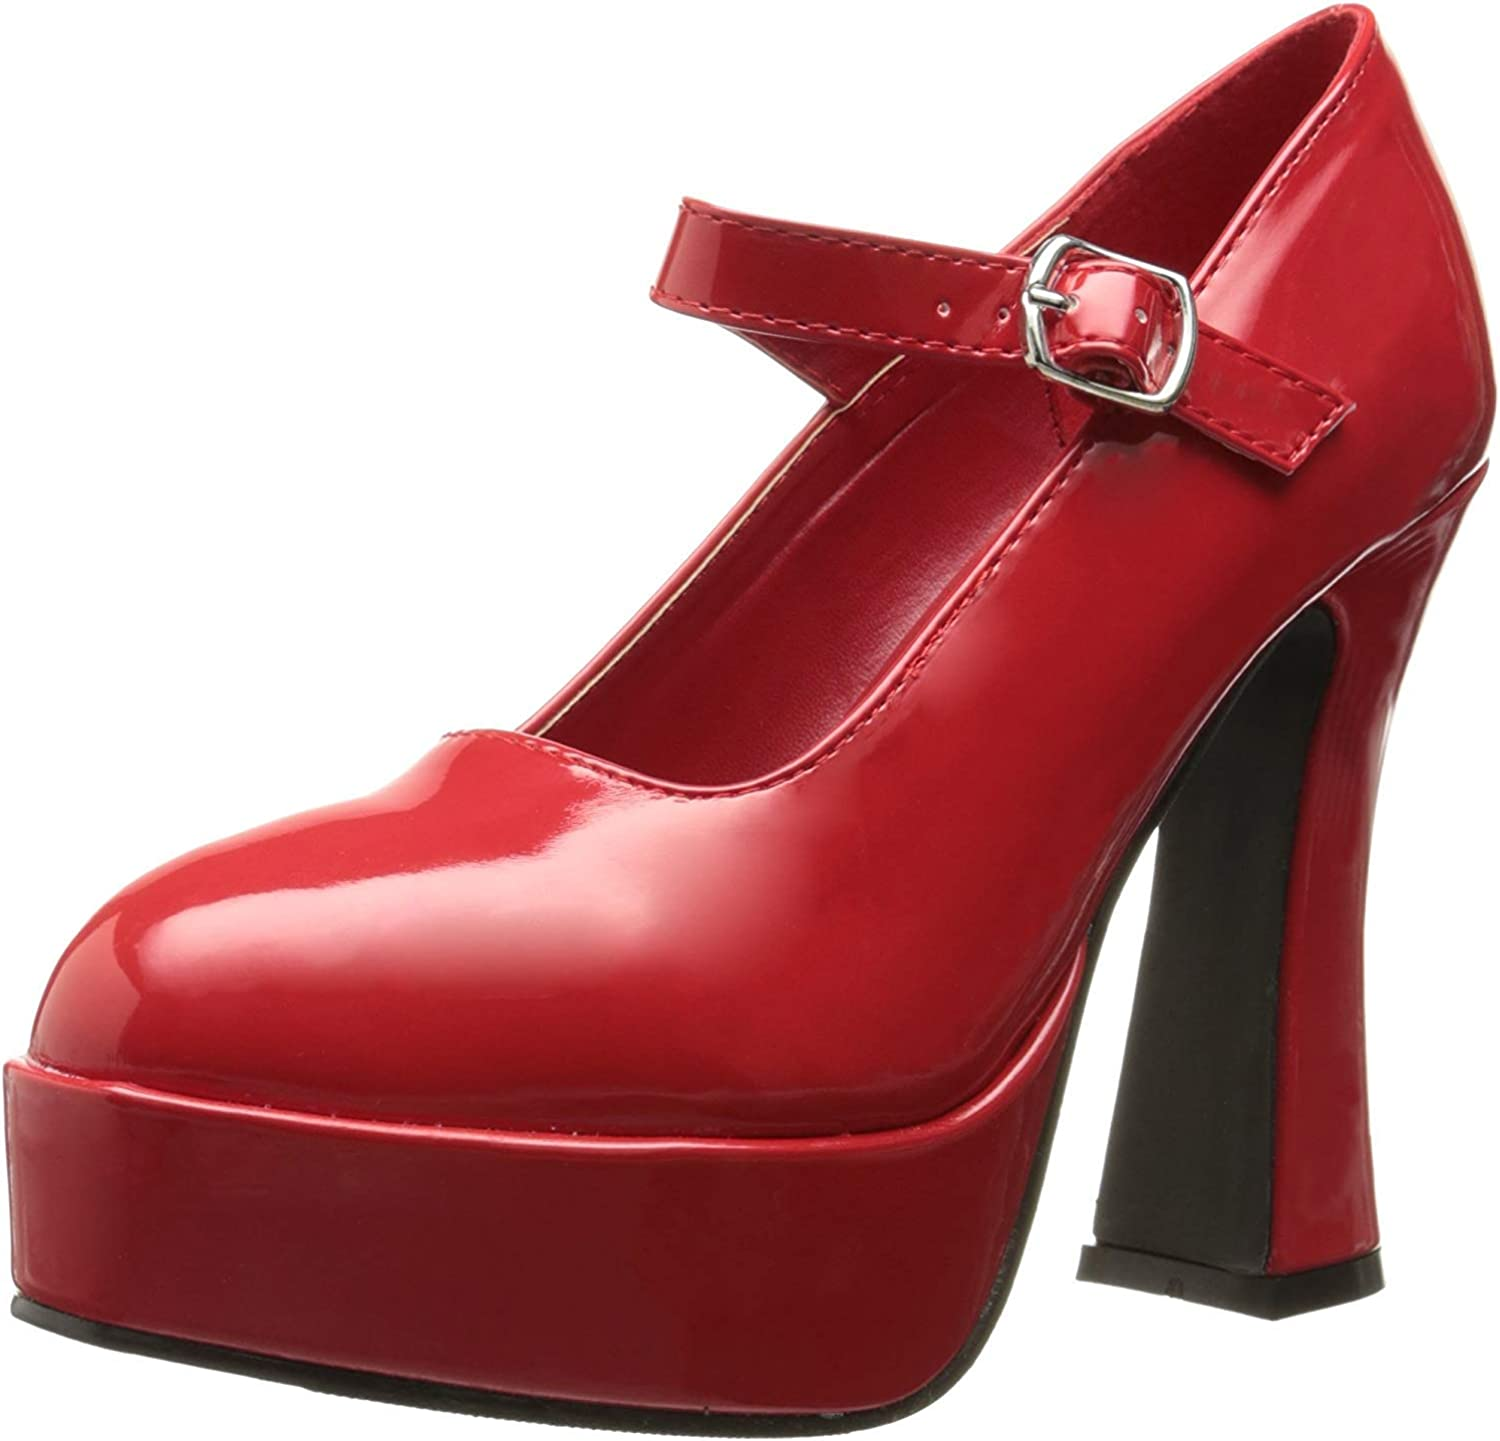 Red Patent Mary Jane Shoes Adult 8M